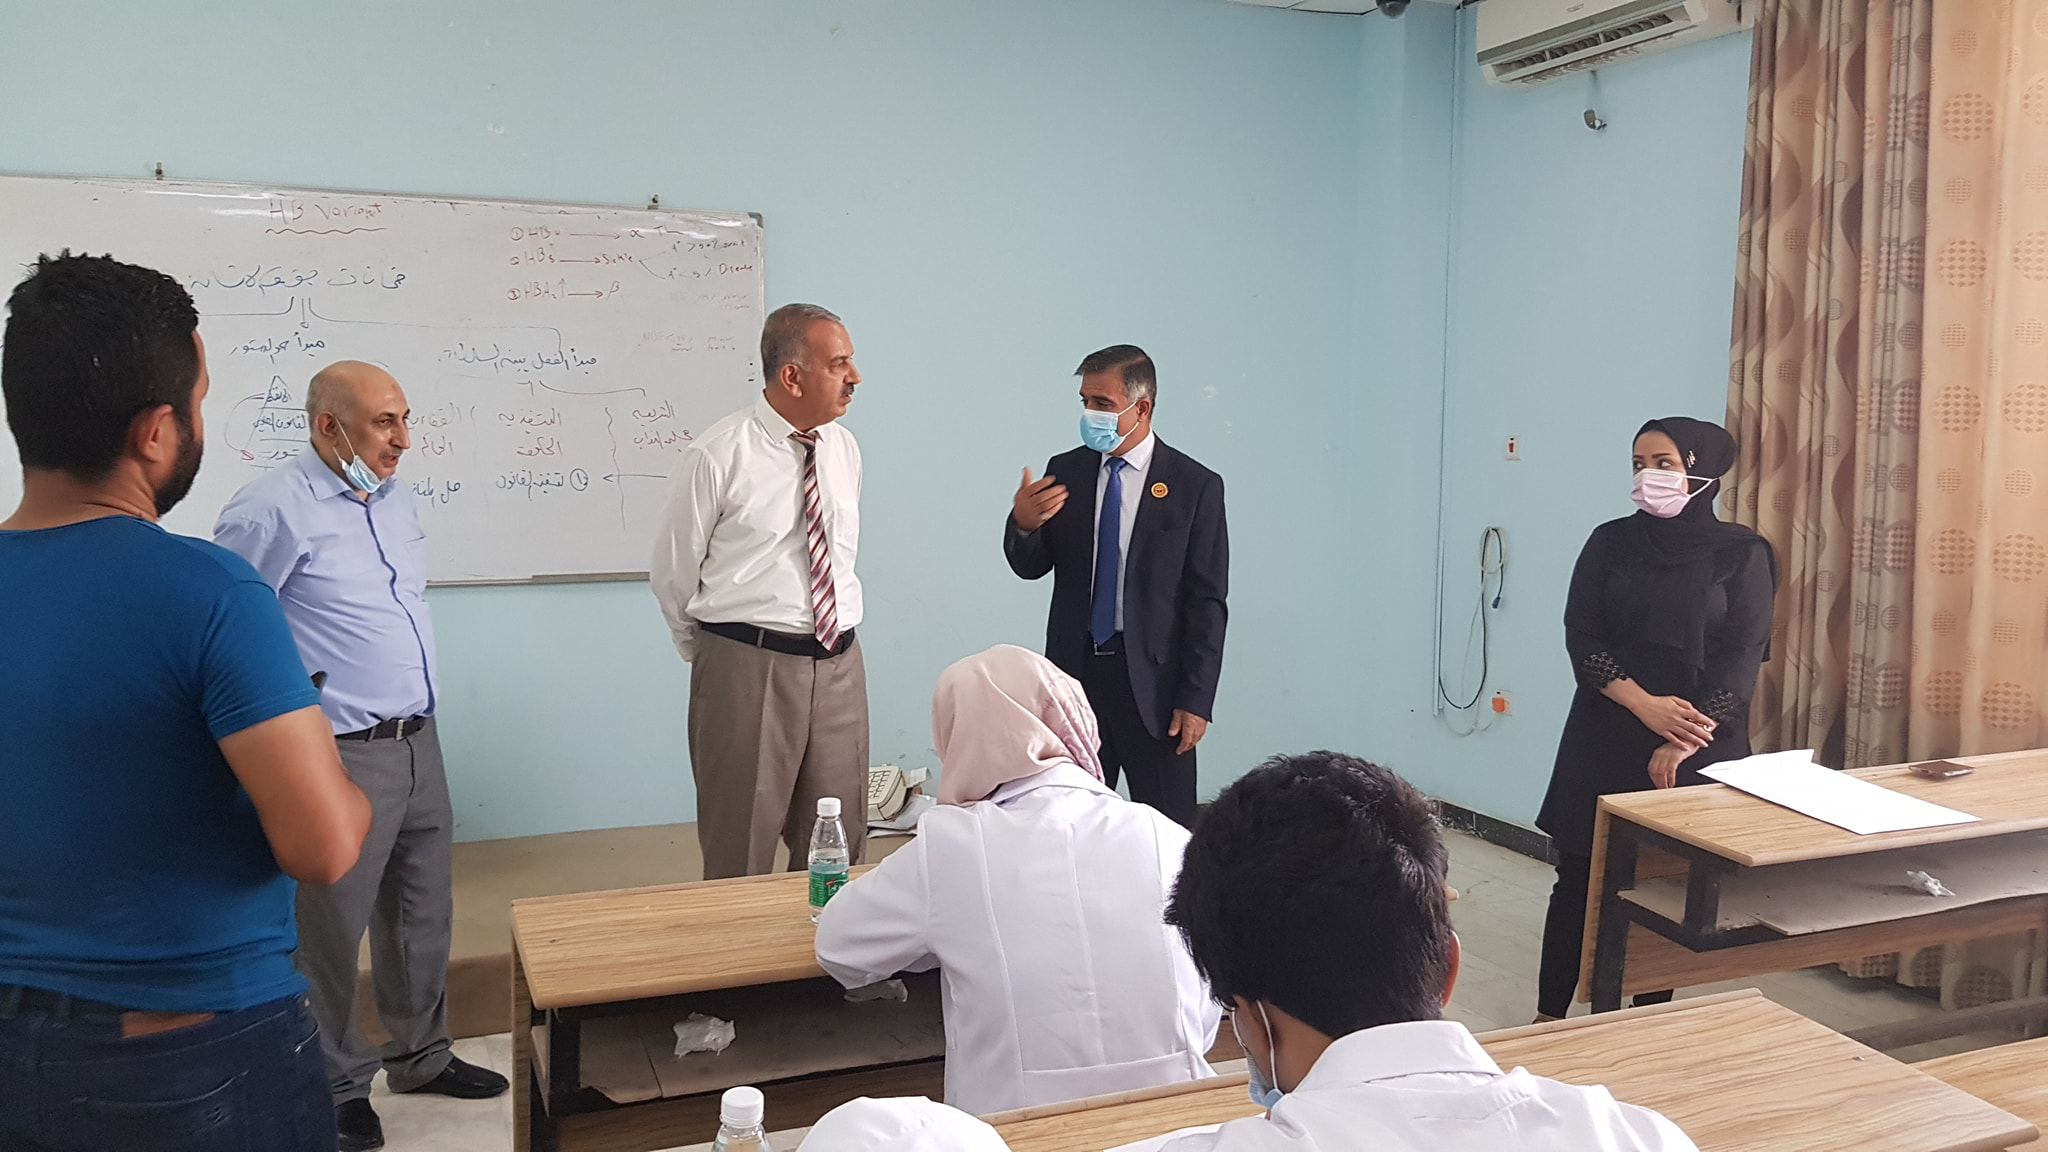 The President of the Southern Technical University checks the functioning of the final attendance exam for elementary students in the Faculty of Health and Medical Technologies.